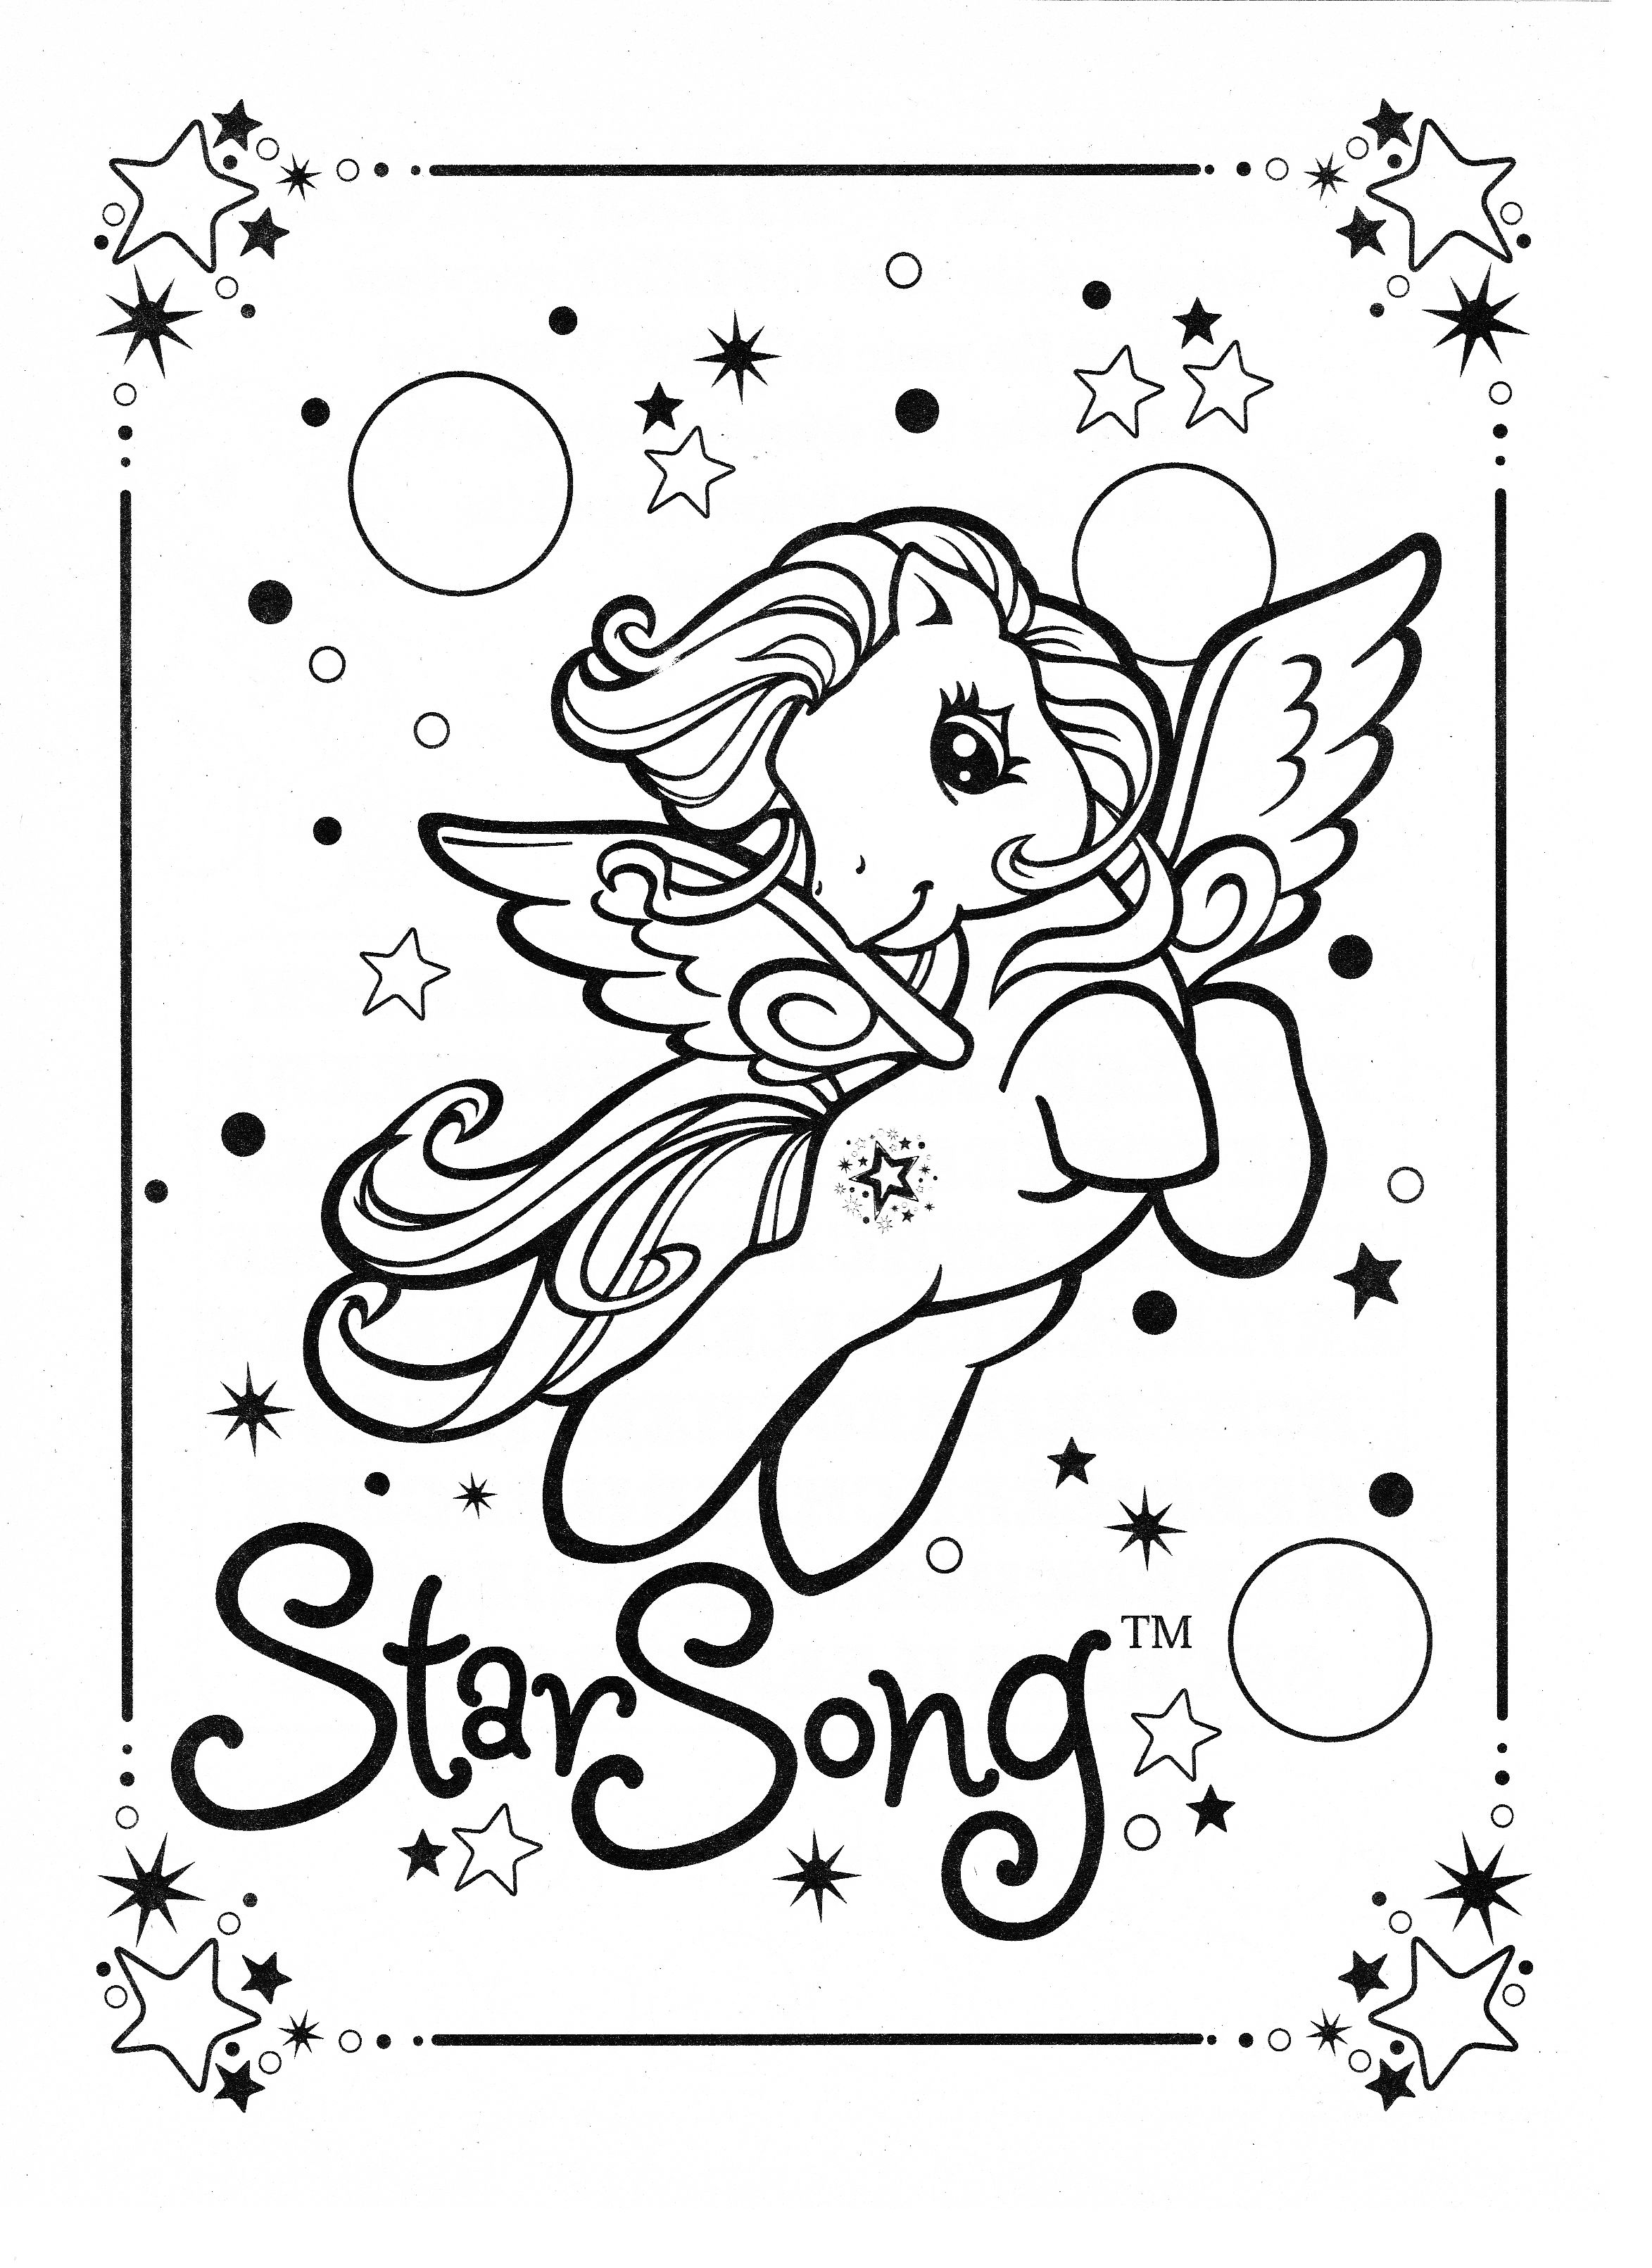 My Little Pony Coloring Page Mlp Star Song Coloring